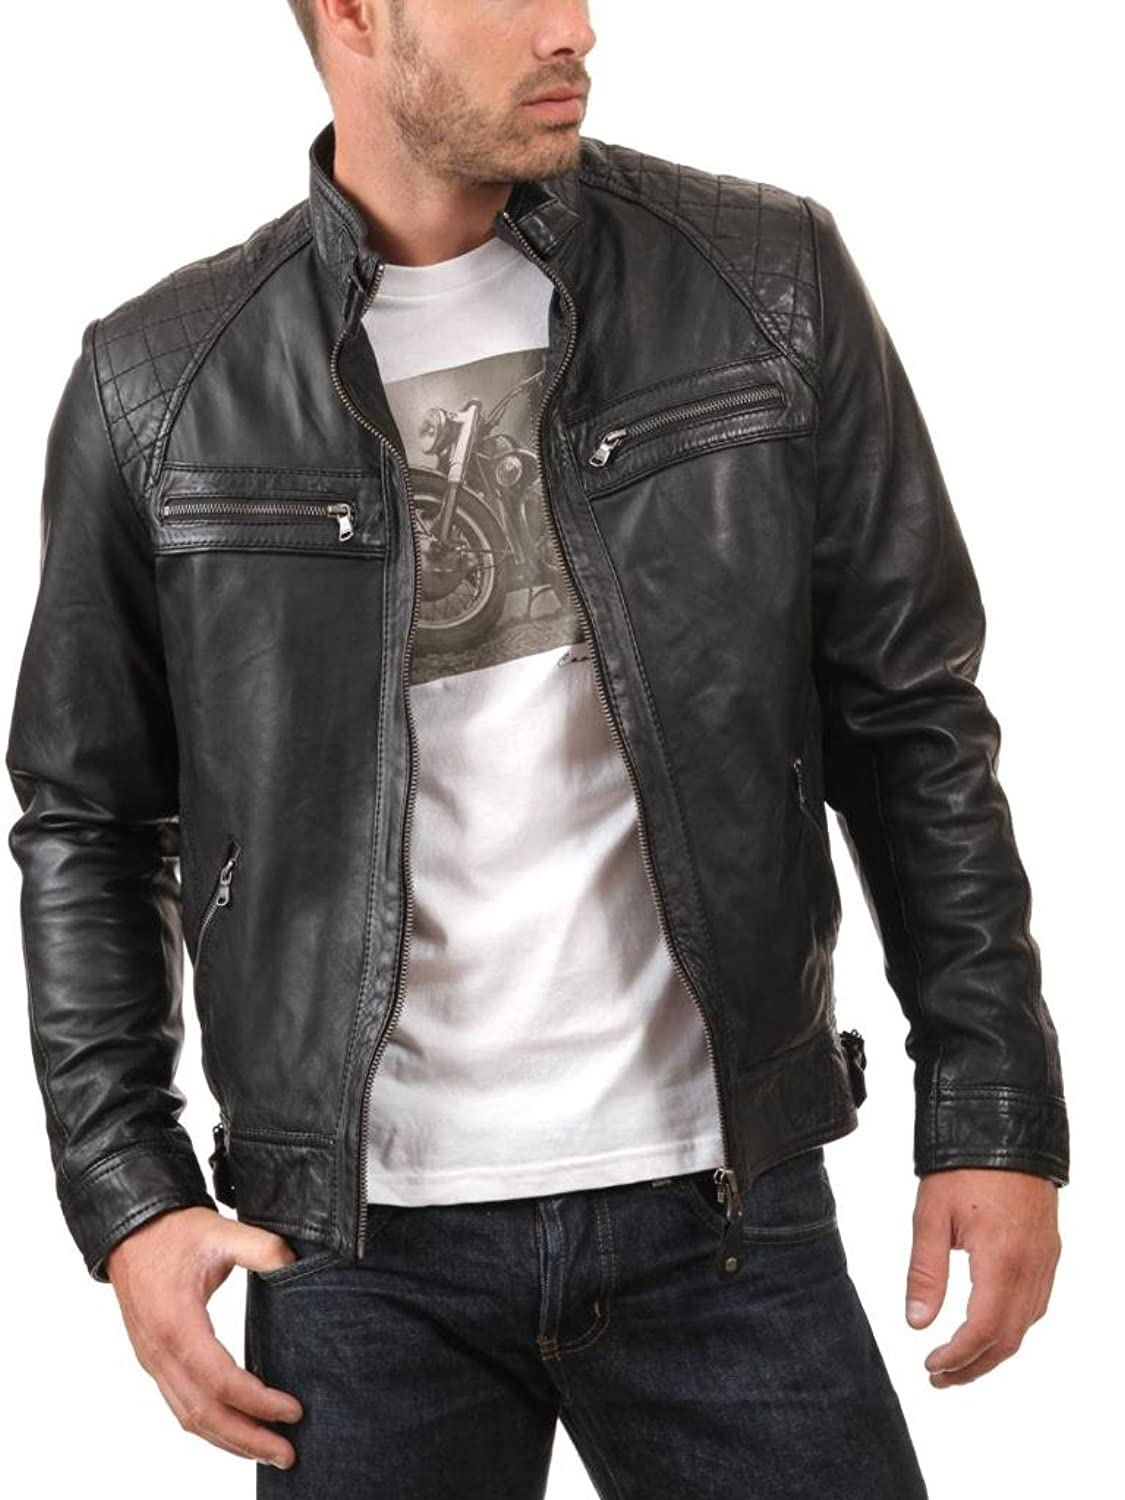 Men Leather Jacket Biker Motorcycle Coat Slim Fit Outwear Jackets AUK038